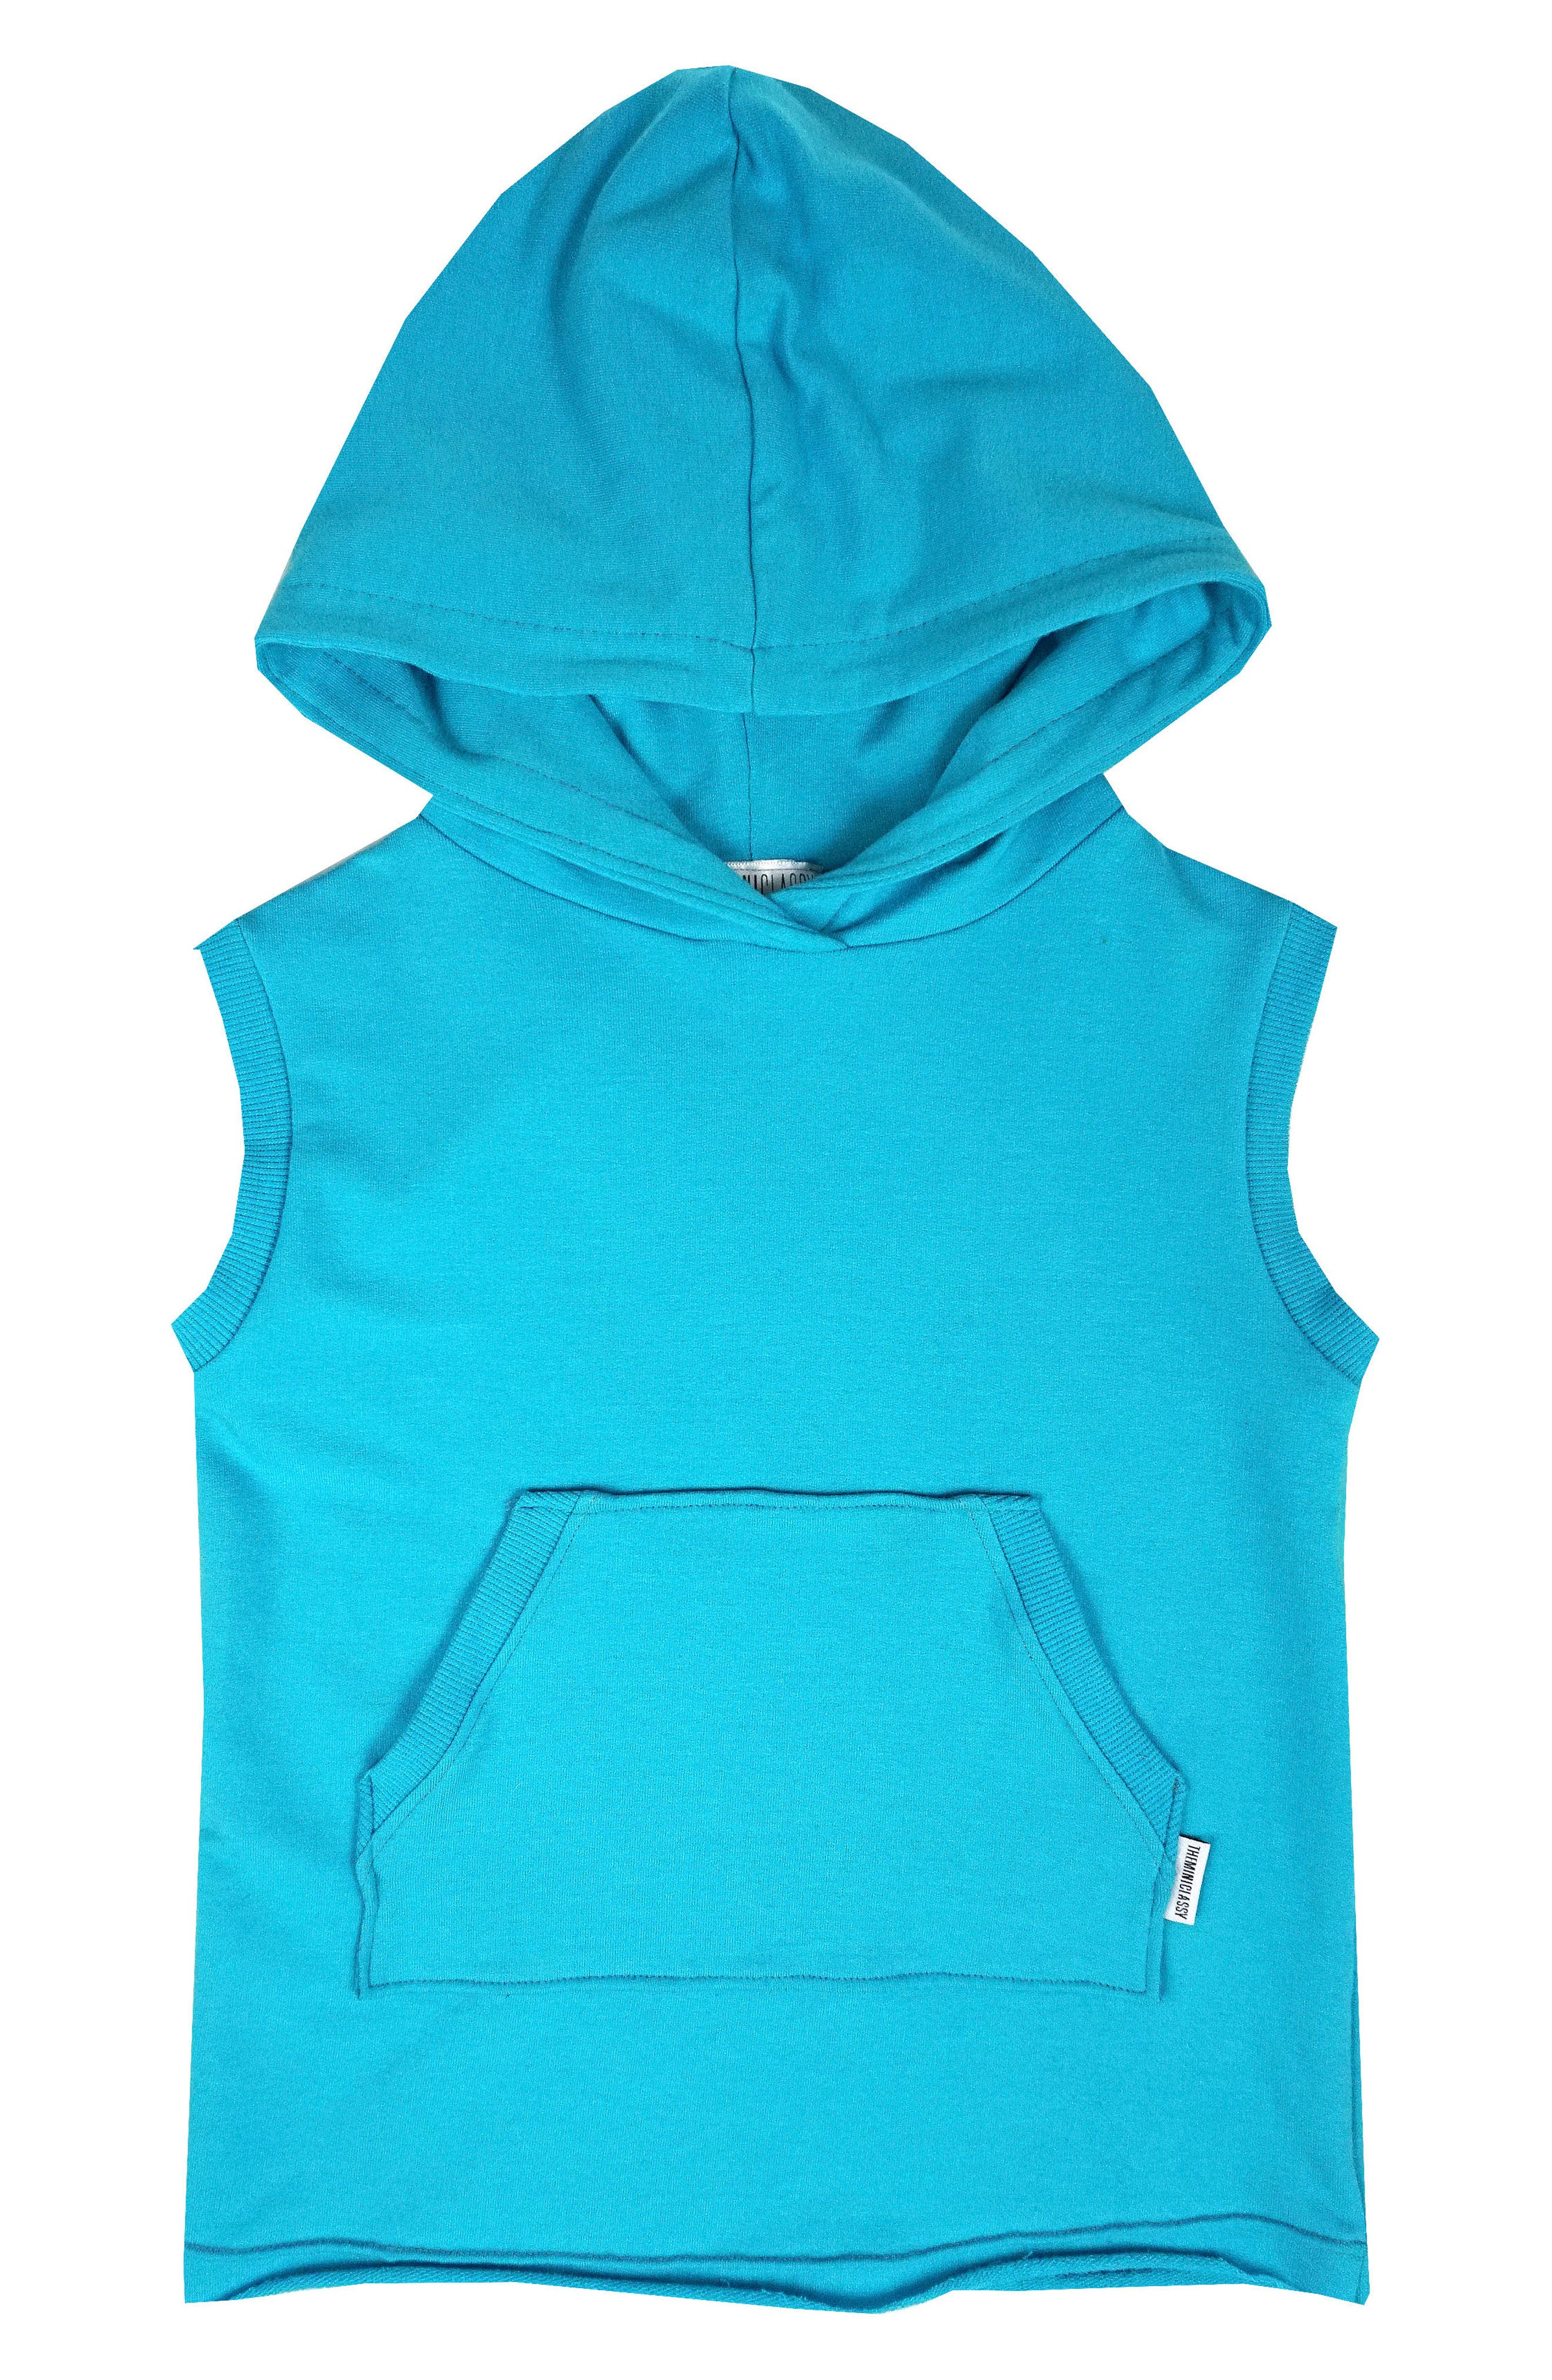 THEMINICLASSY Sleeveless Pullover Hoodie (Toddler Boys & Little Boys)